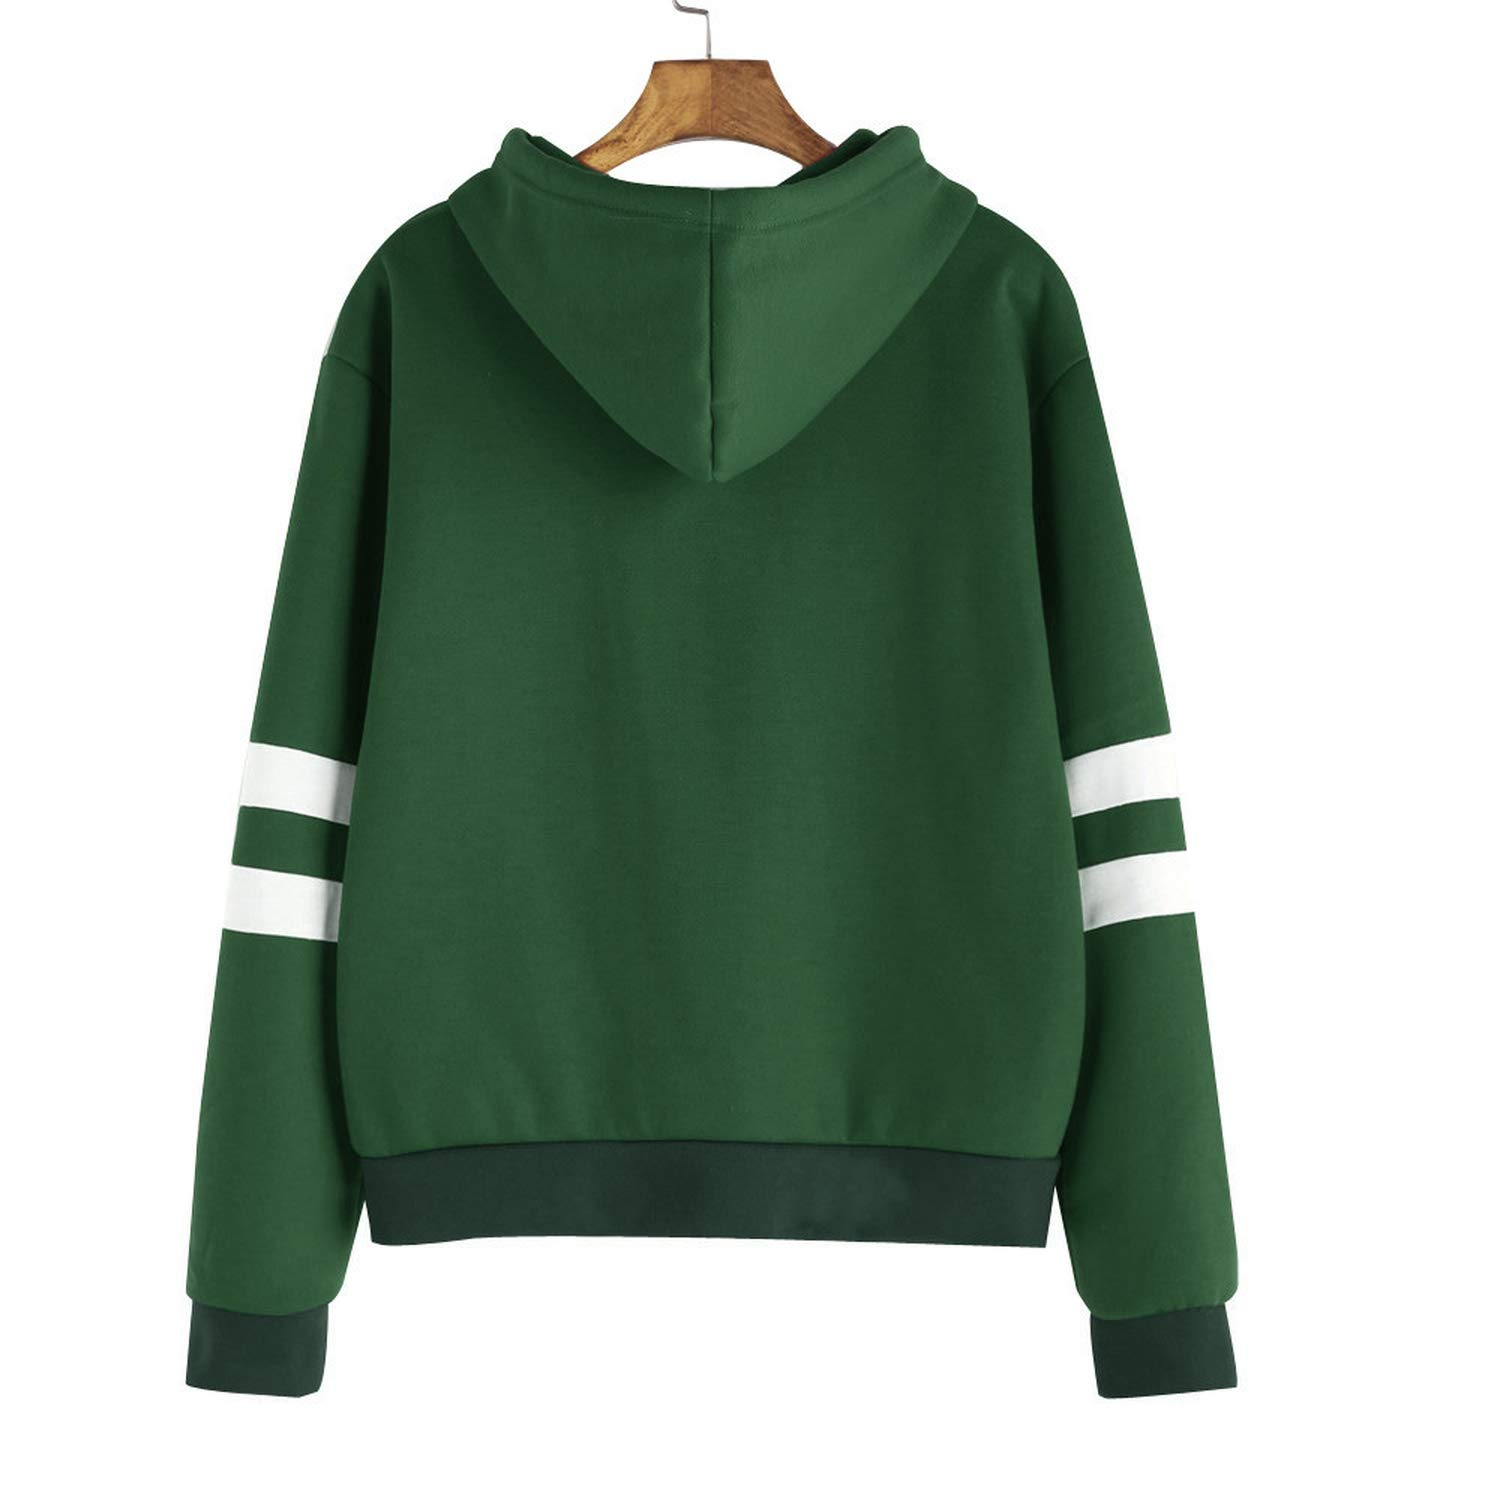 Sweatshirt Womens Long Sleeve Hoodie Sweatshirt Jumper Hooded Pullover Tops Maglione di Moda#LSJ, Red, XL, China at Amazon Womens Clothing store: